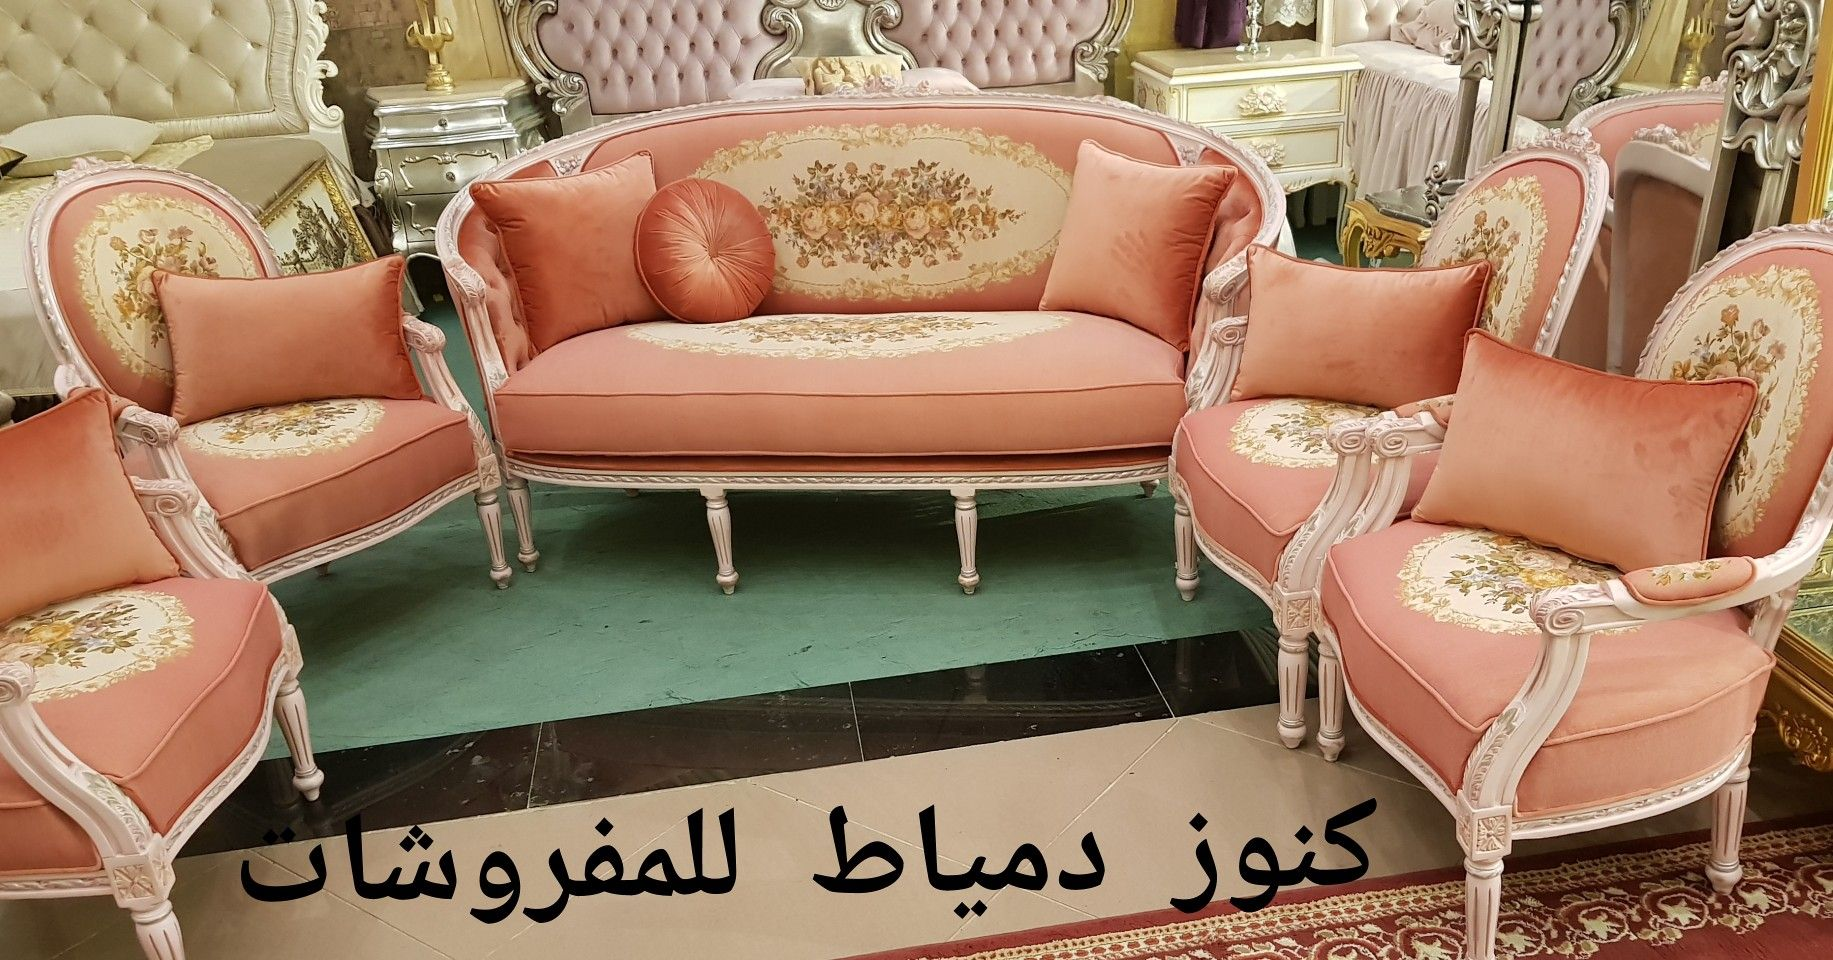 Pin By Knooz Dumyat Furniture On Castelo In 2021 Chaise Lounge Furniture Home Decor